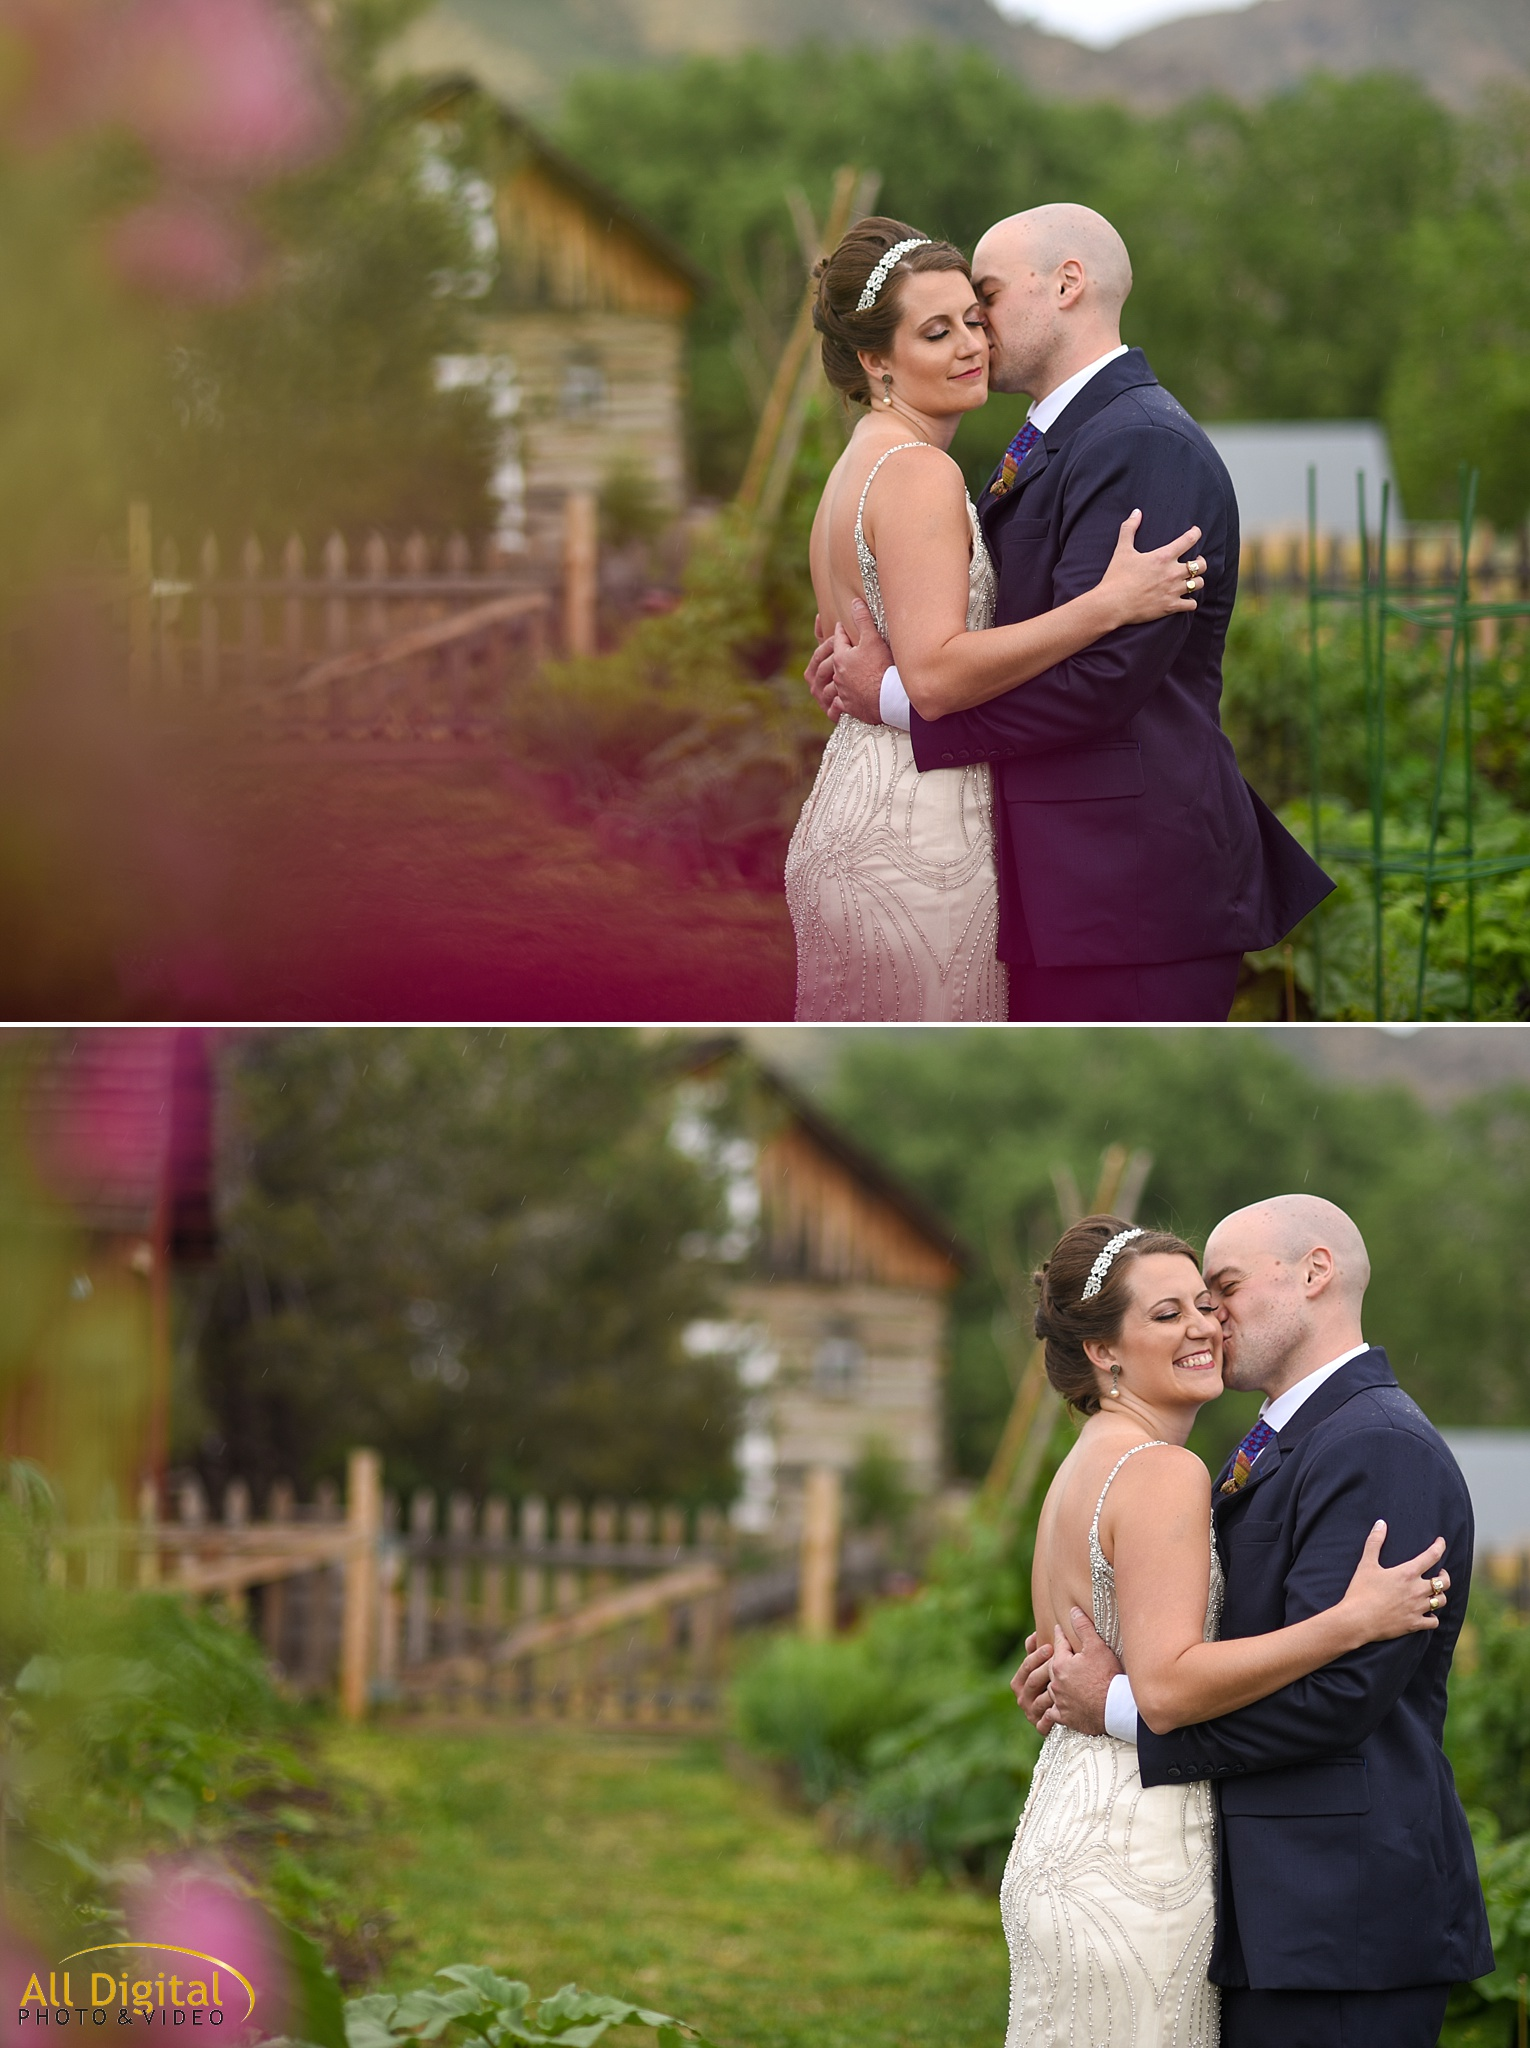 Mary & Jeremy's Romantic Portraits at Clear Creek History Park photographed by All Digital Studios.